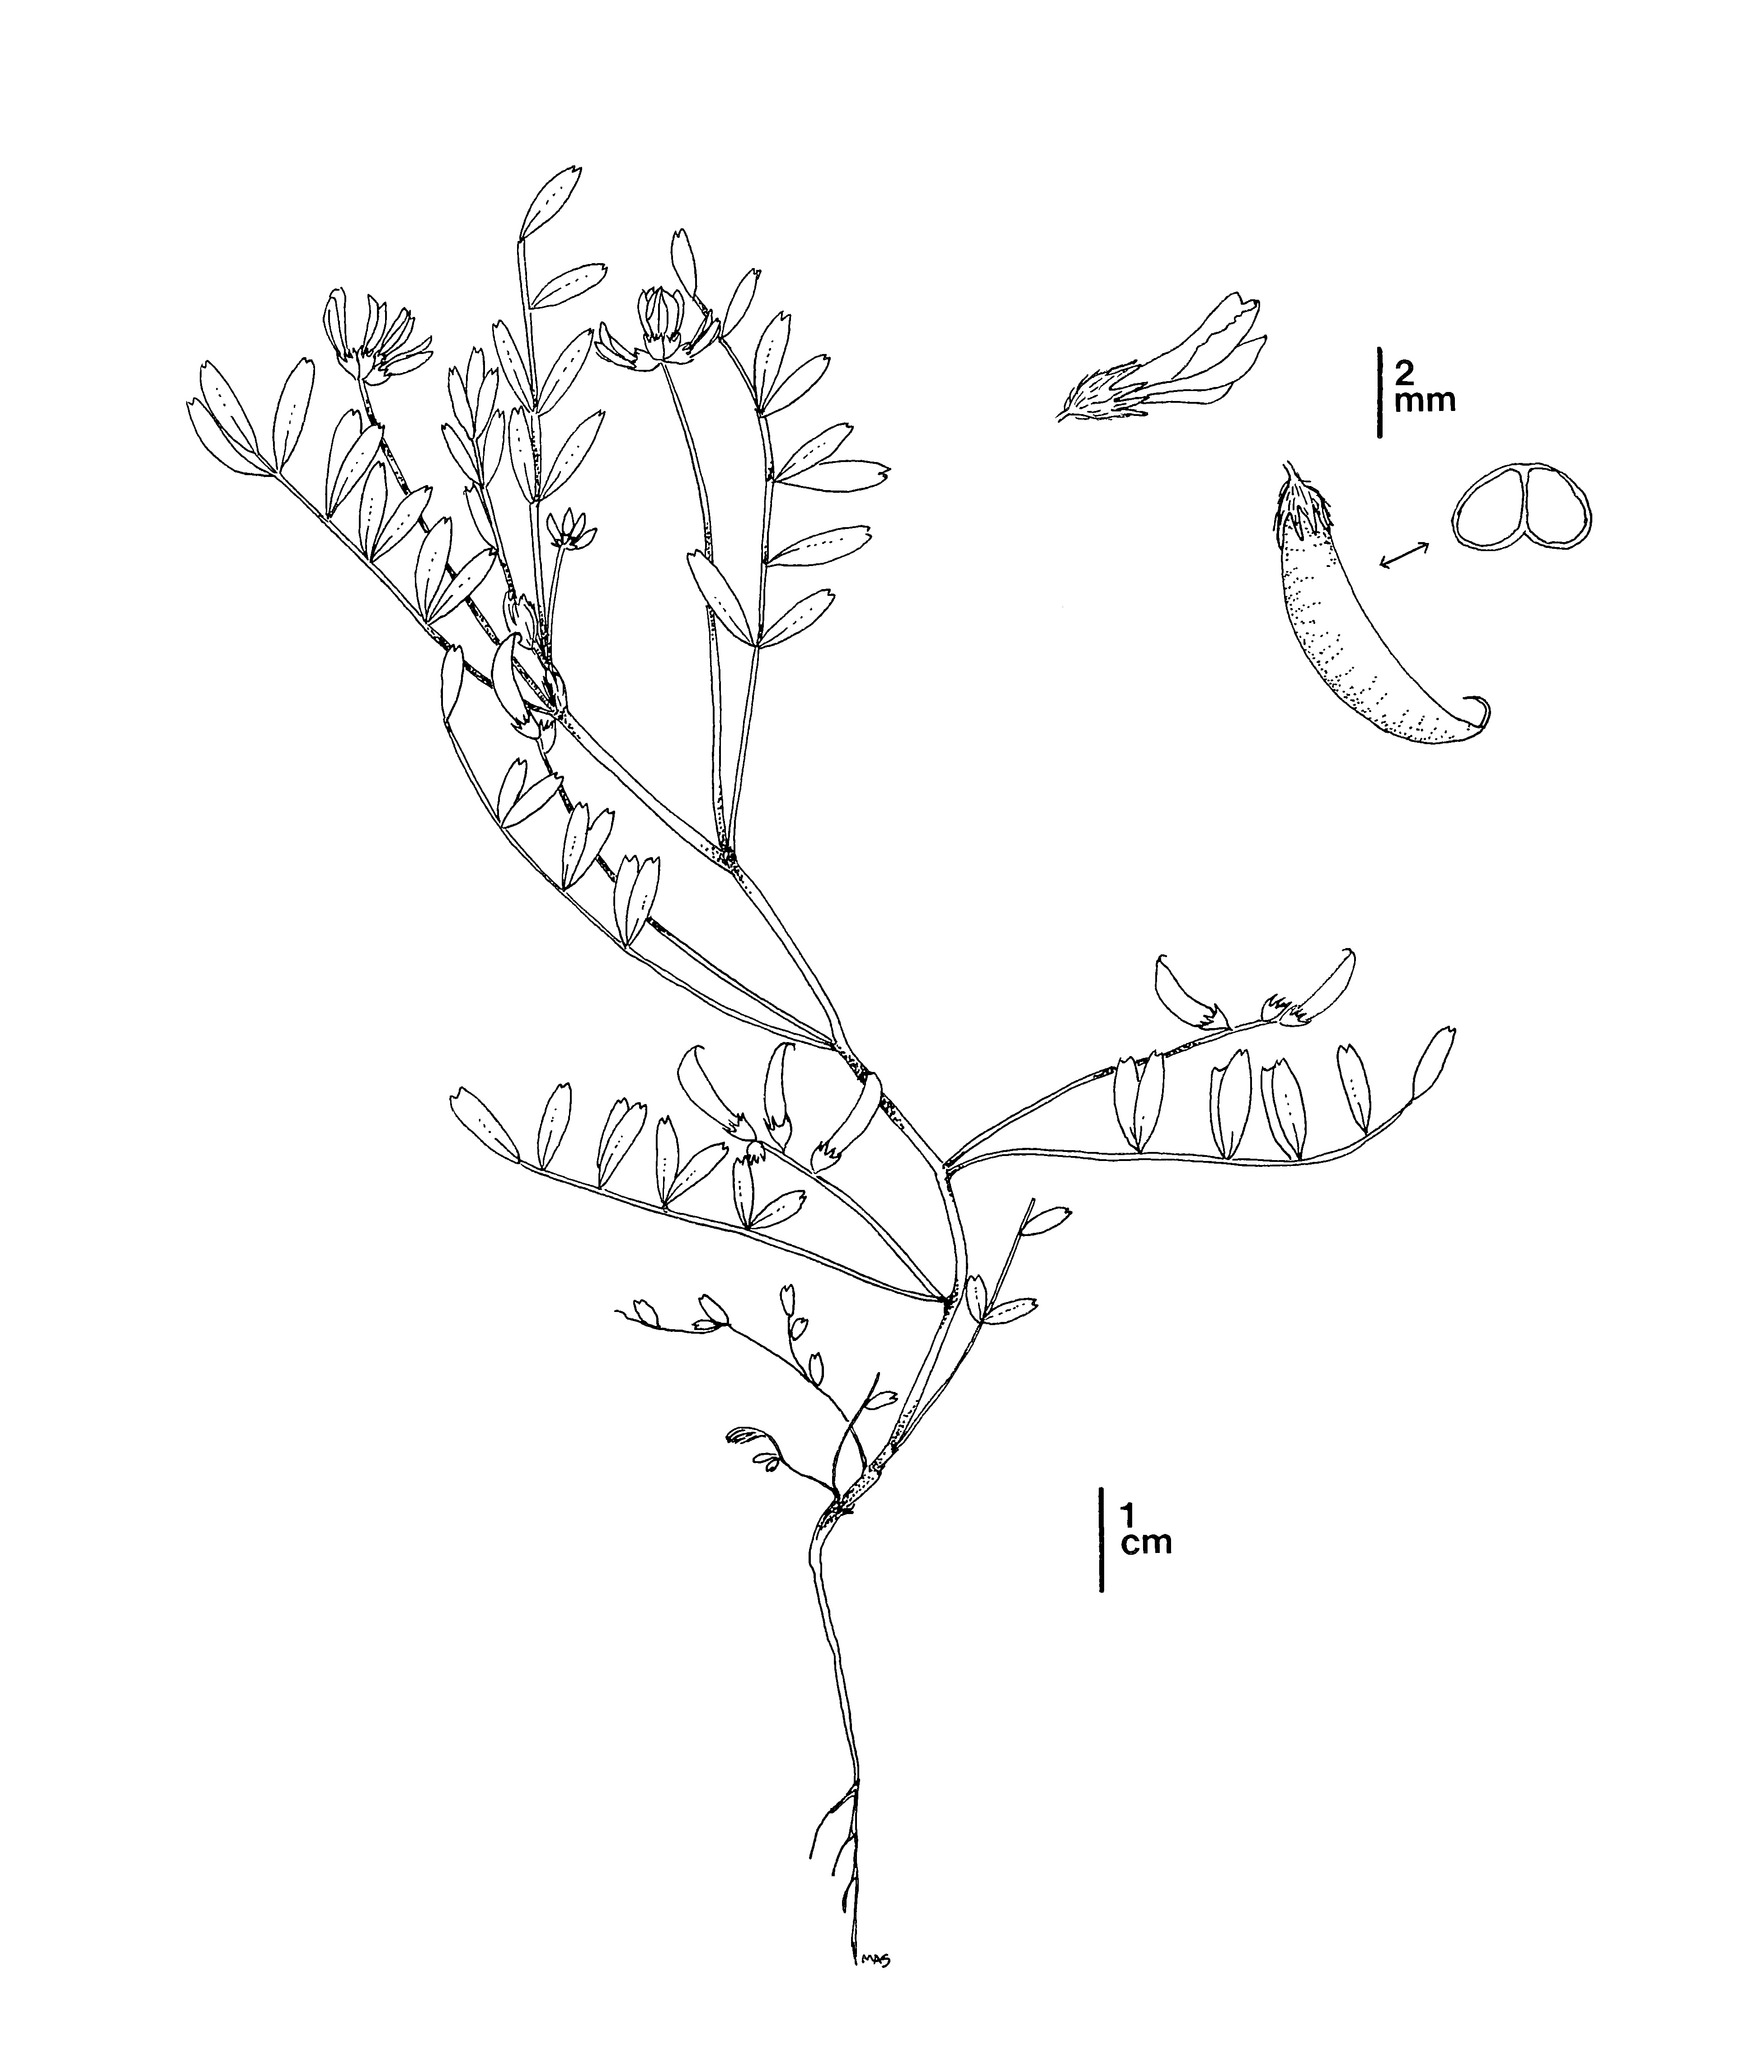 Line Drawing of Astragalus tener var. titi by Mary Ann Showers - click to enlarge in new window